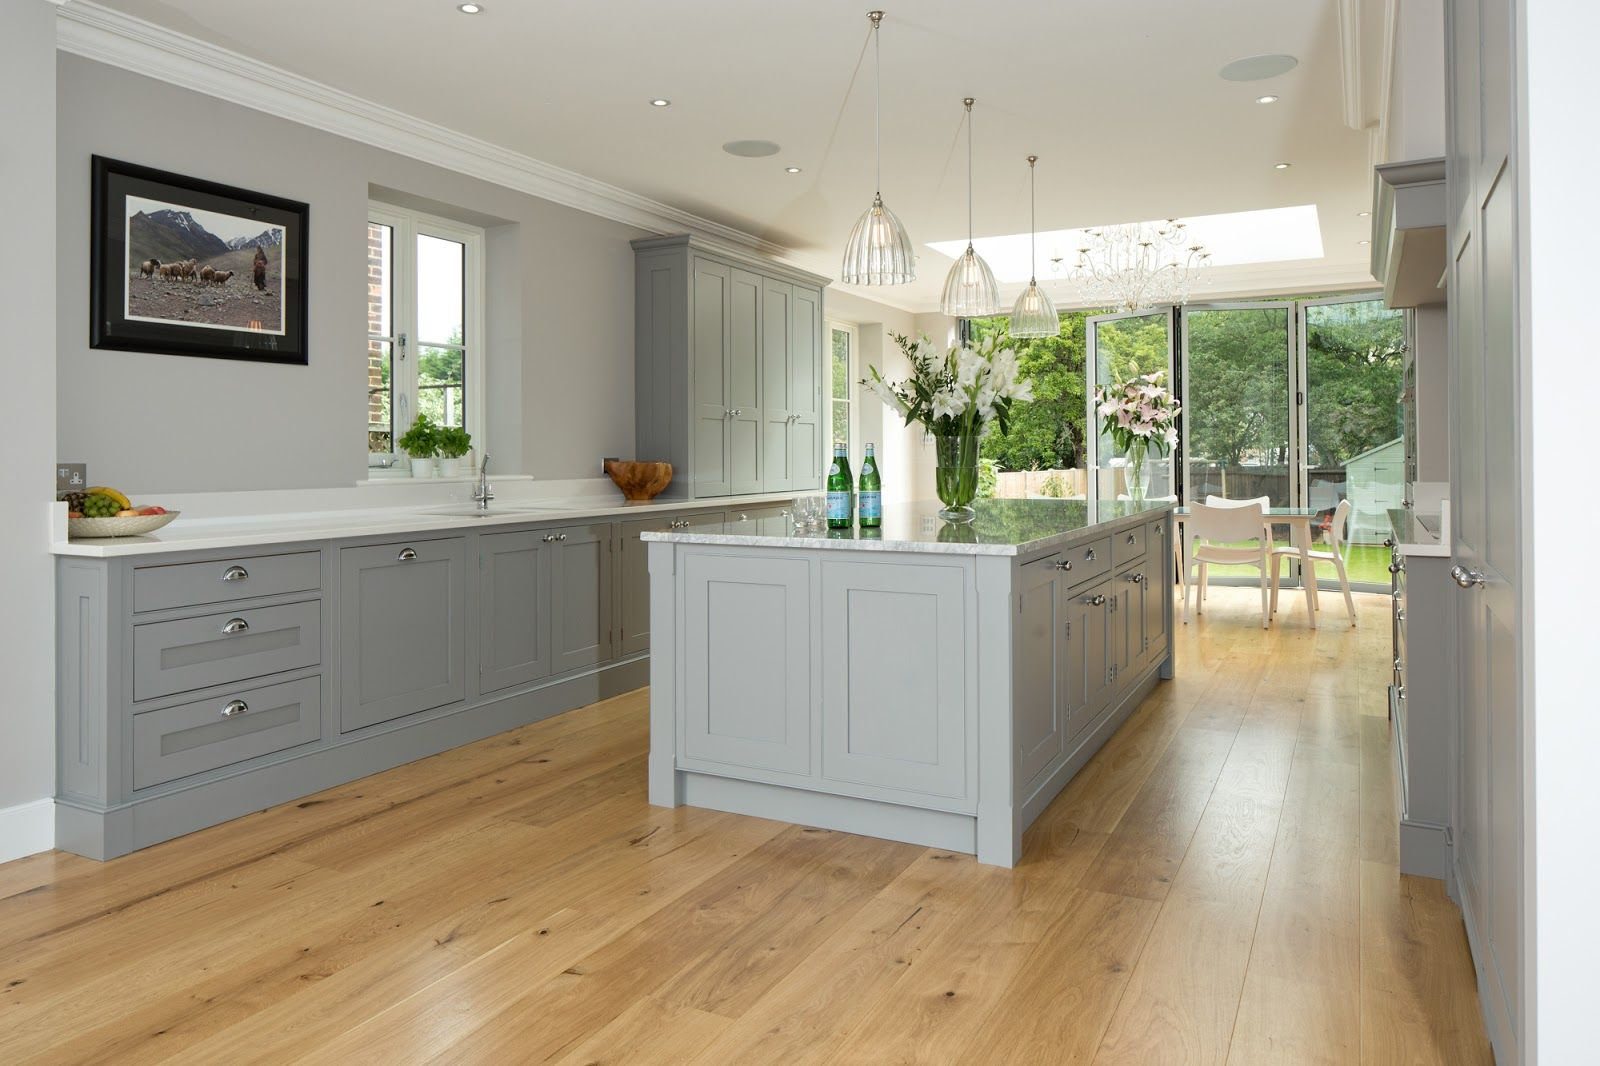 Best Light Grey Shaker Kitchens Google Search Grey Shaker 400 x 300